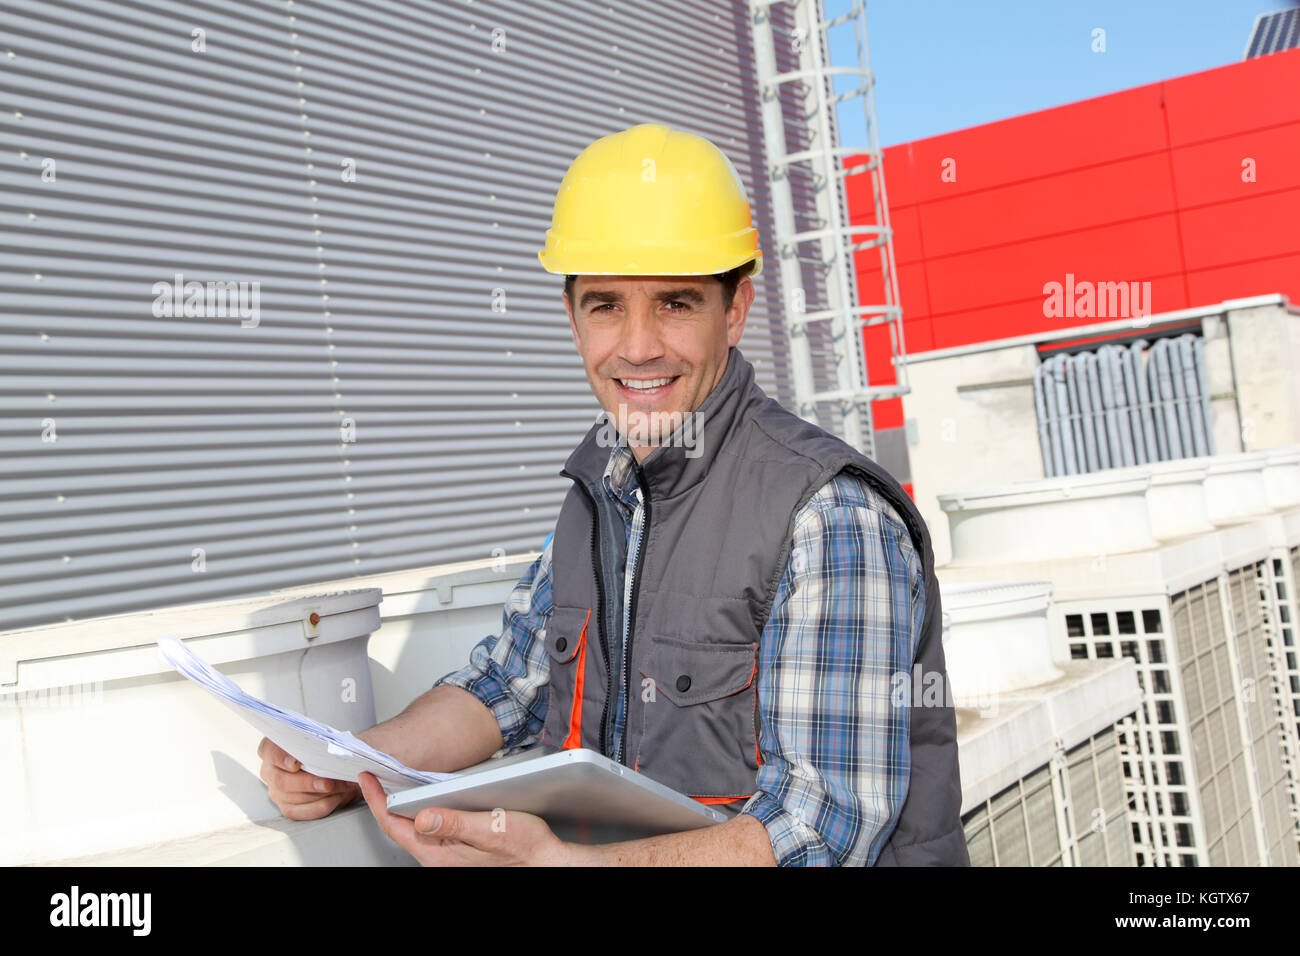 Foreman on industrial site with tablet - Stock Image